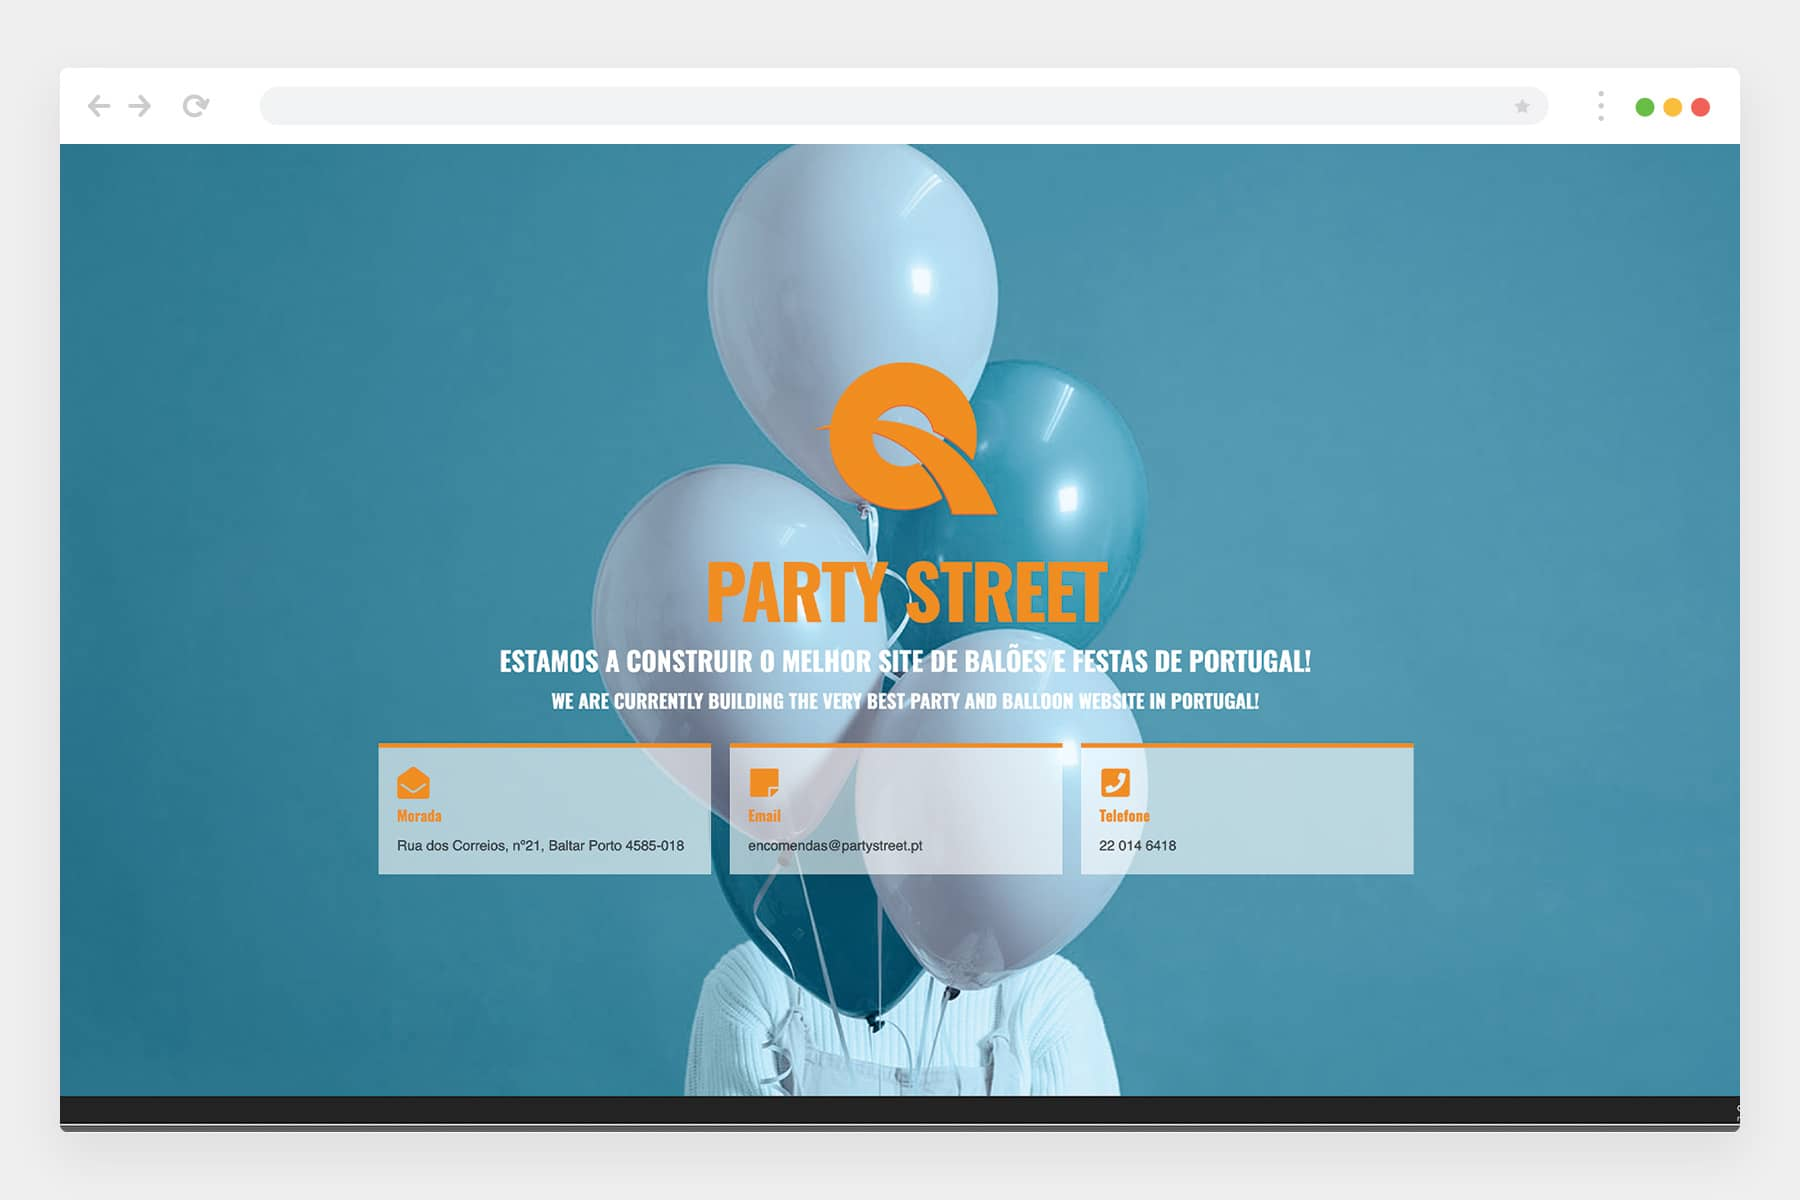 Partystreet website